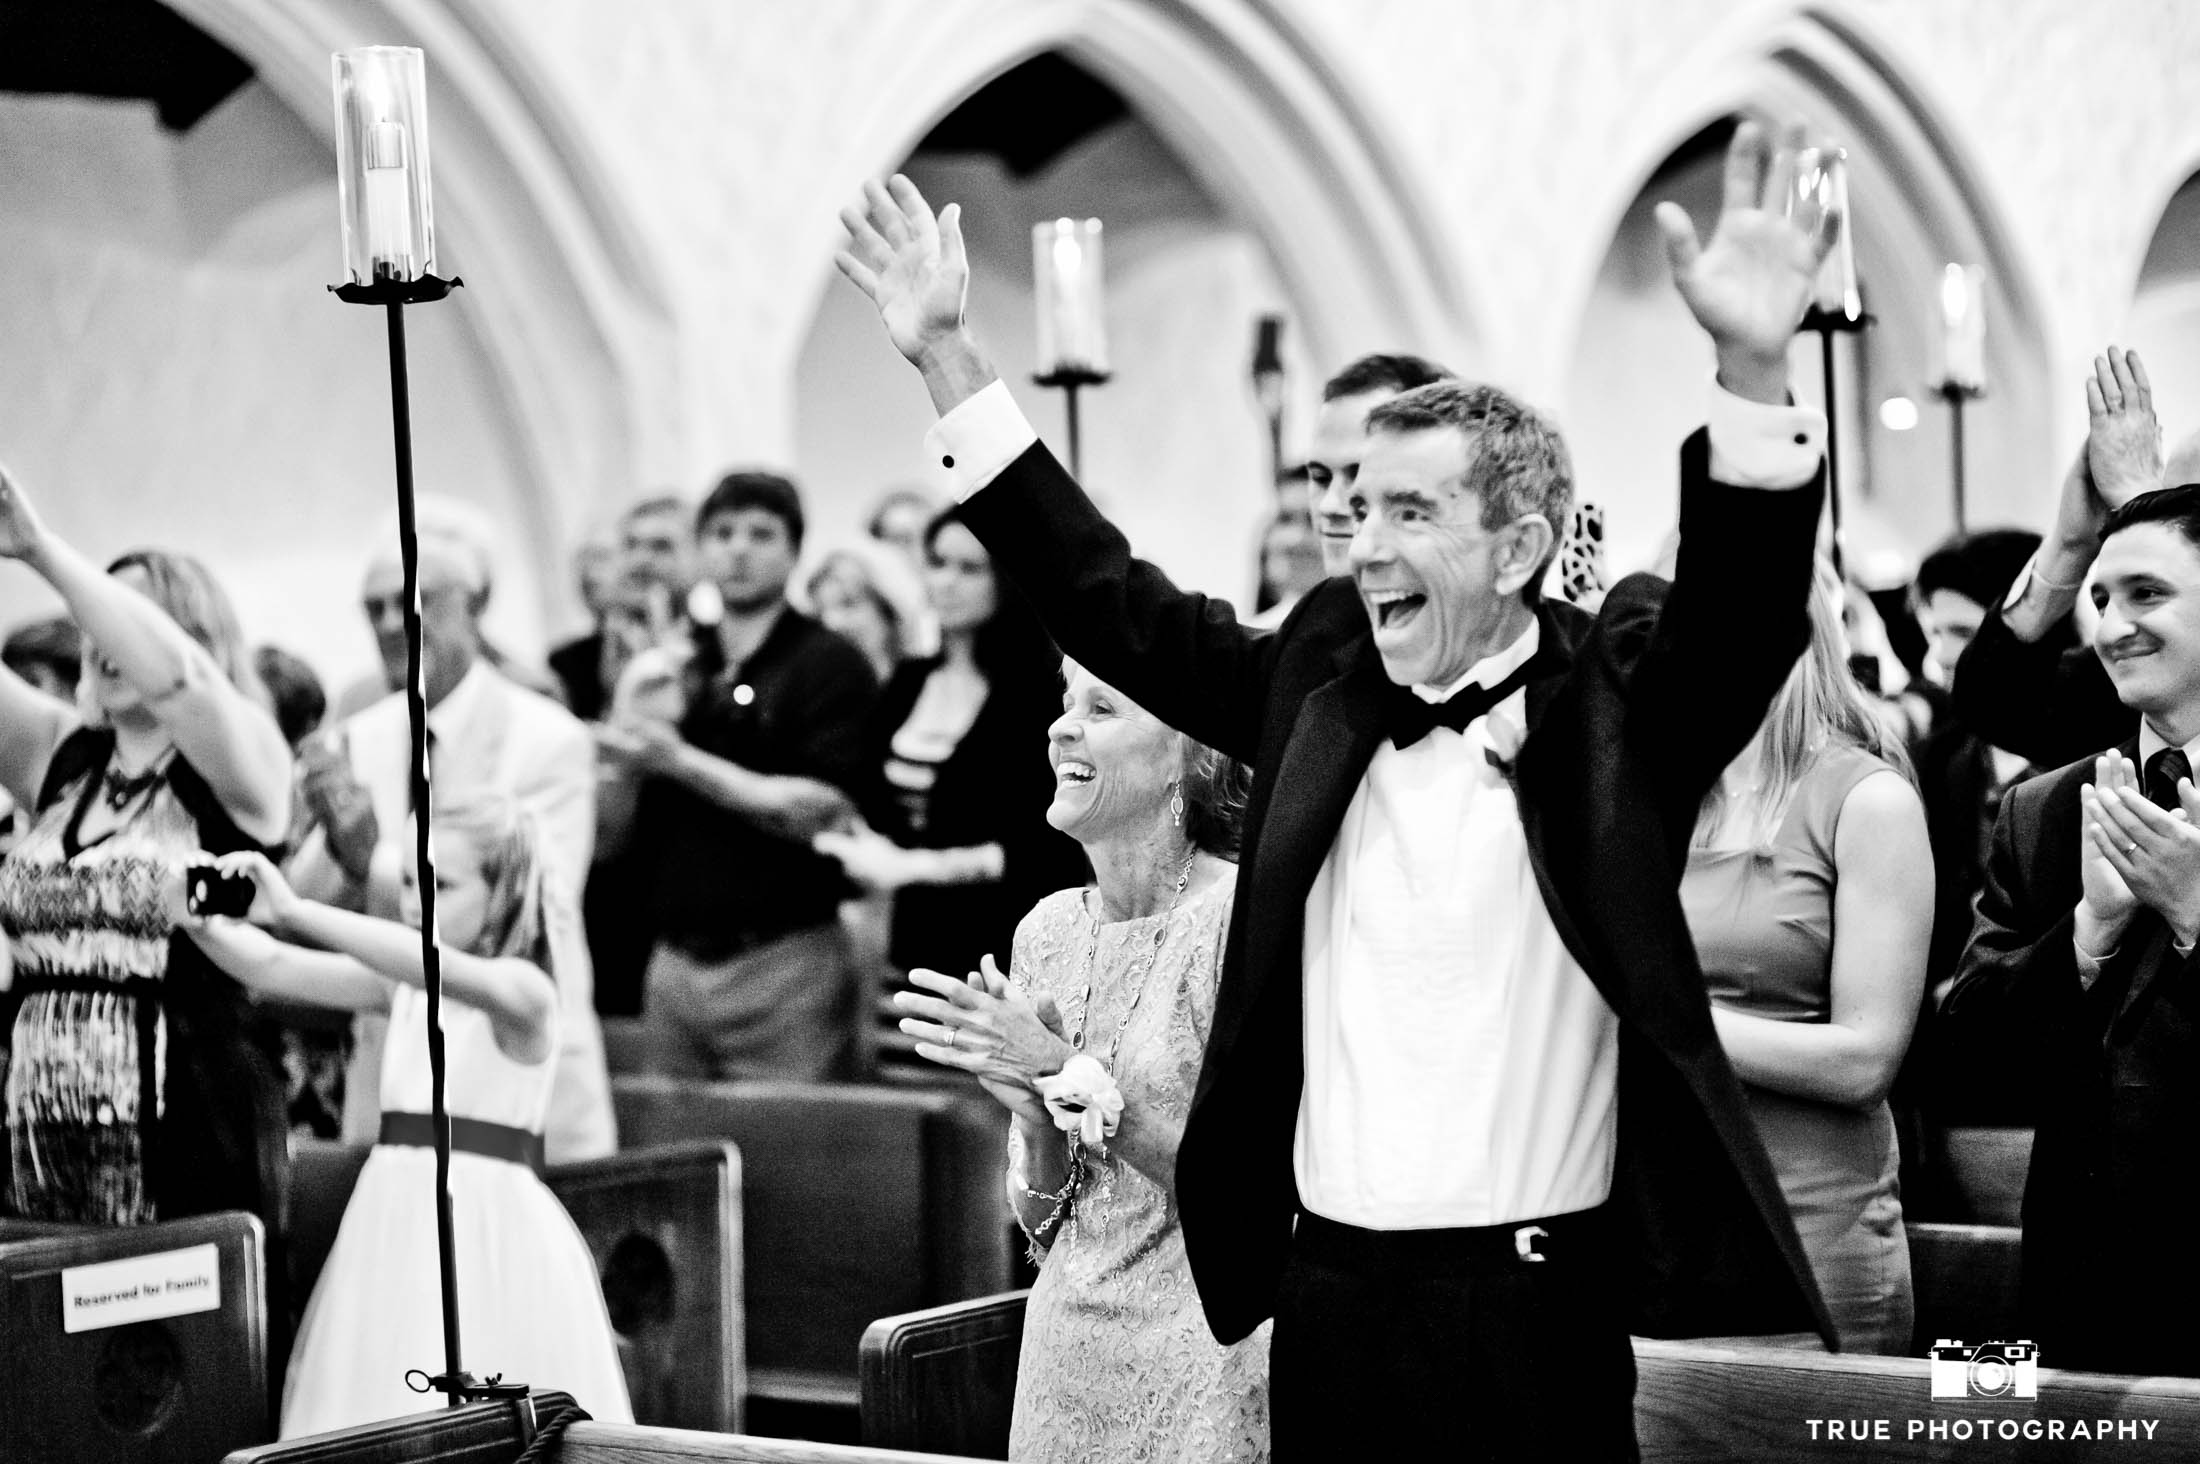 Excited Dad cheers and celebrates during wedding ceremony at church